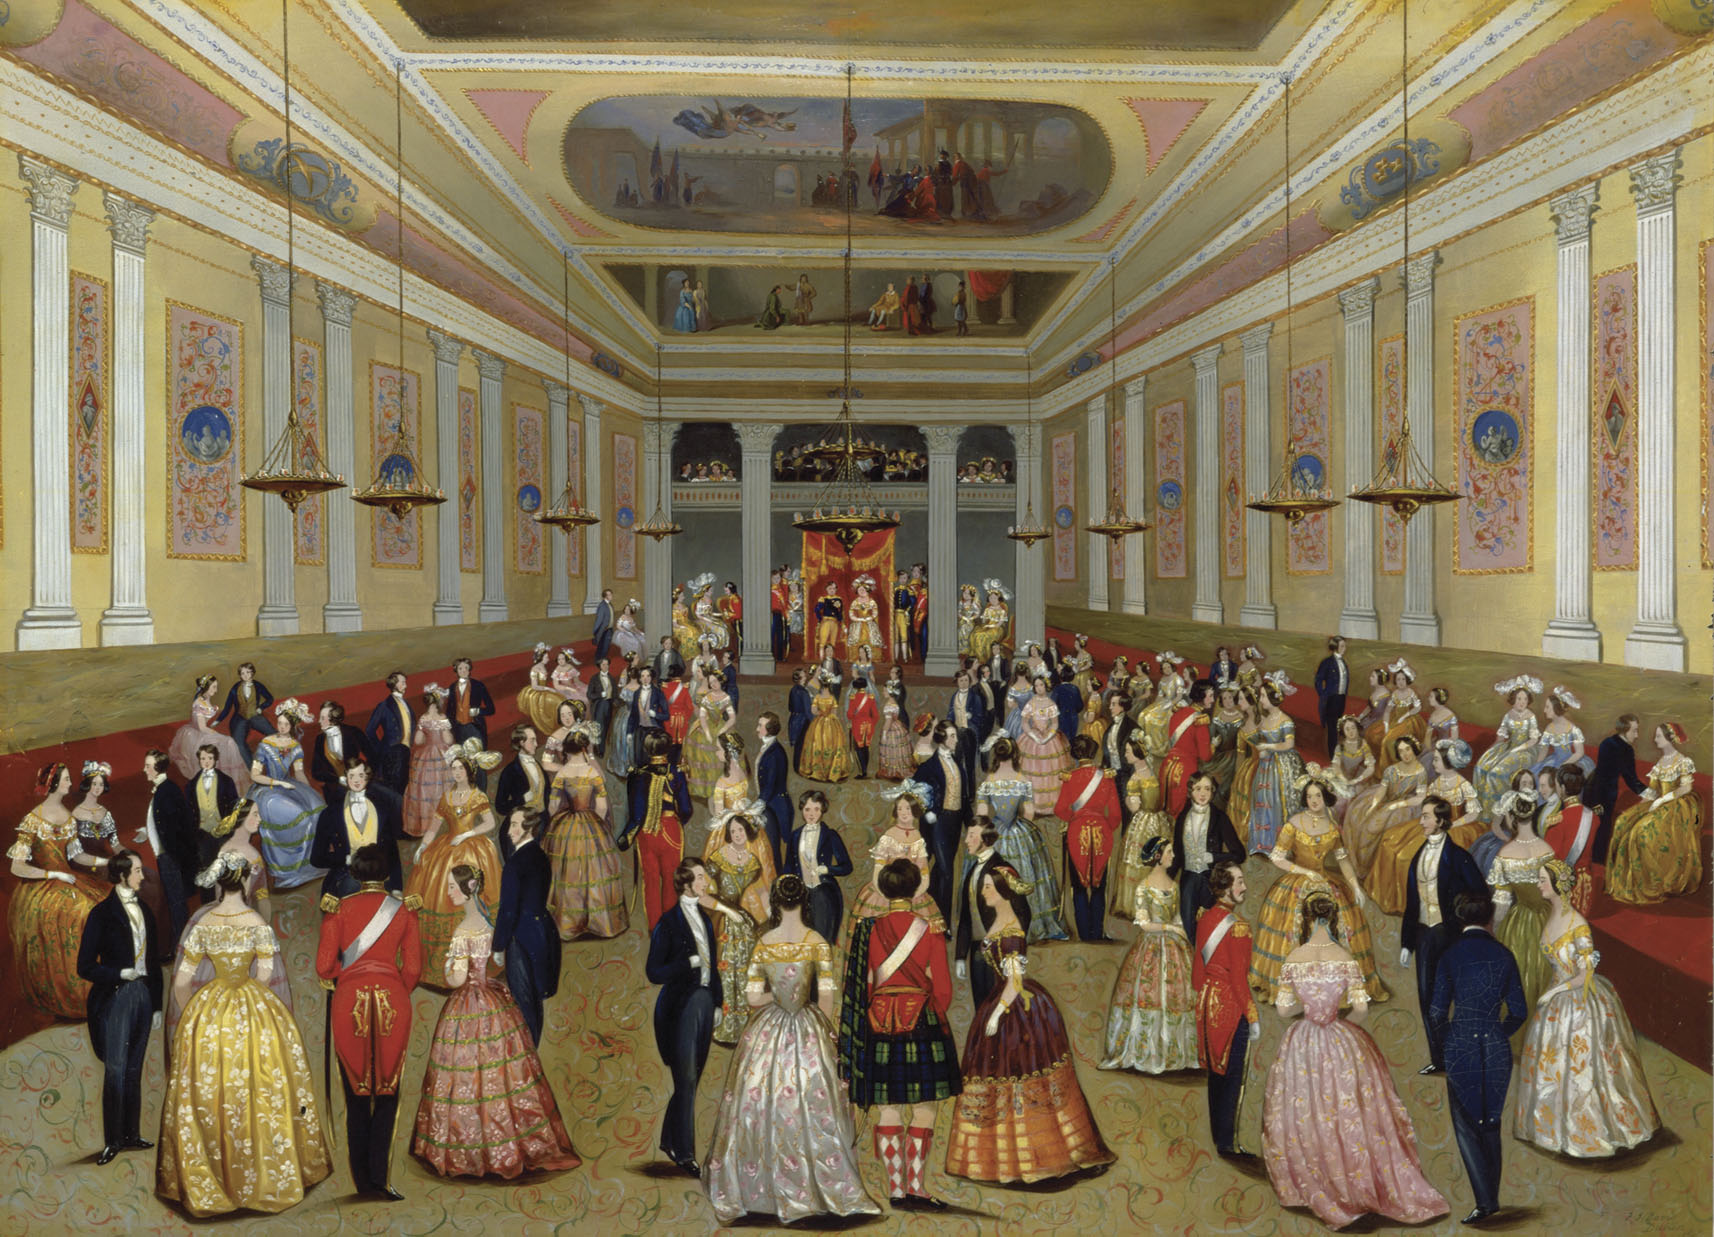 The State Ballroom, St. Patrick's Hall, Dublin Castle. F.J. Davis, c.1845. This work records one of the major occasions of Dublin's annual social calendar. Until 1922 the castle was the seat of British Government rule in Ireland. It is now part of the Government of Ireland's official buildings. On loan from the Brian P. Burns Collection of Irish Art.